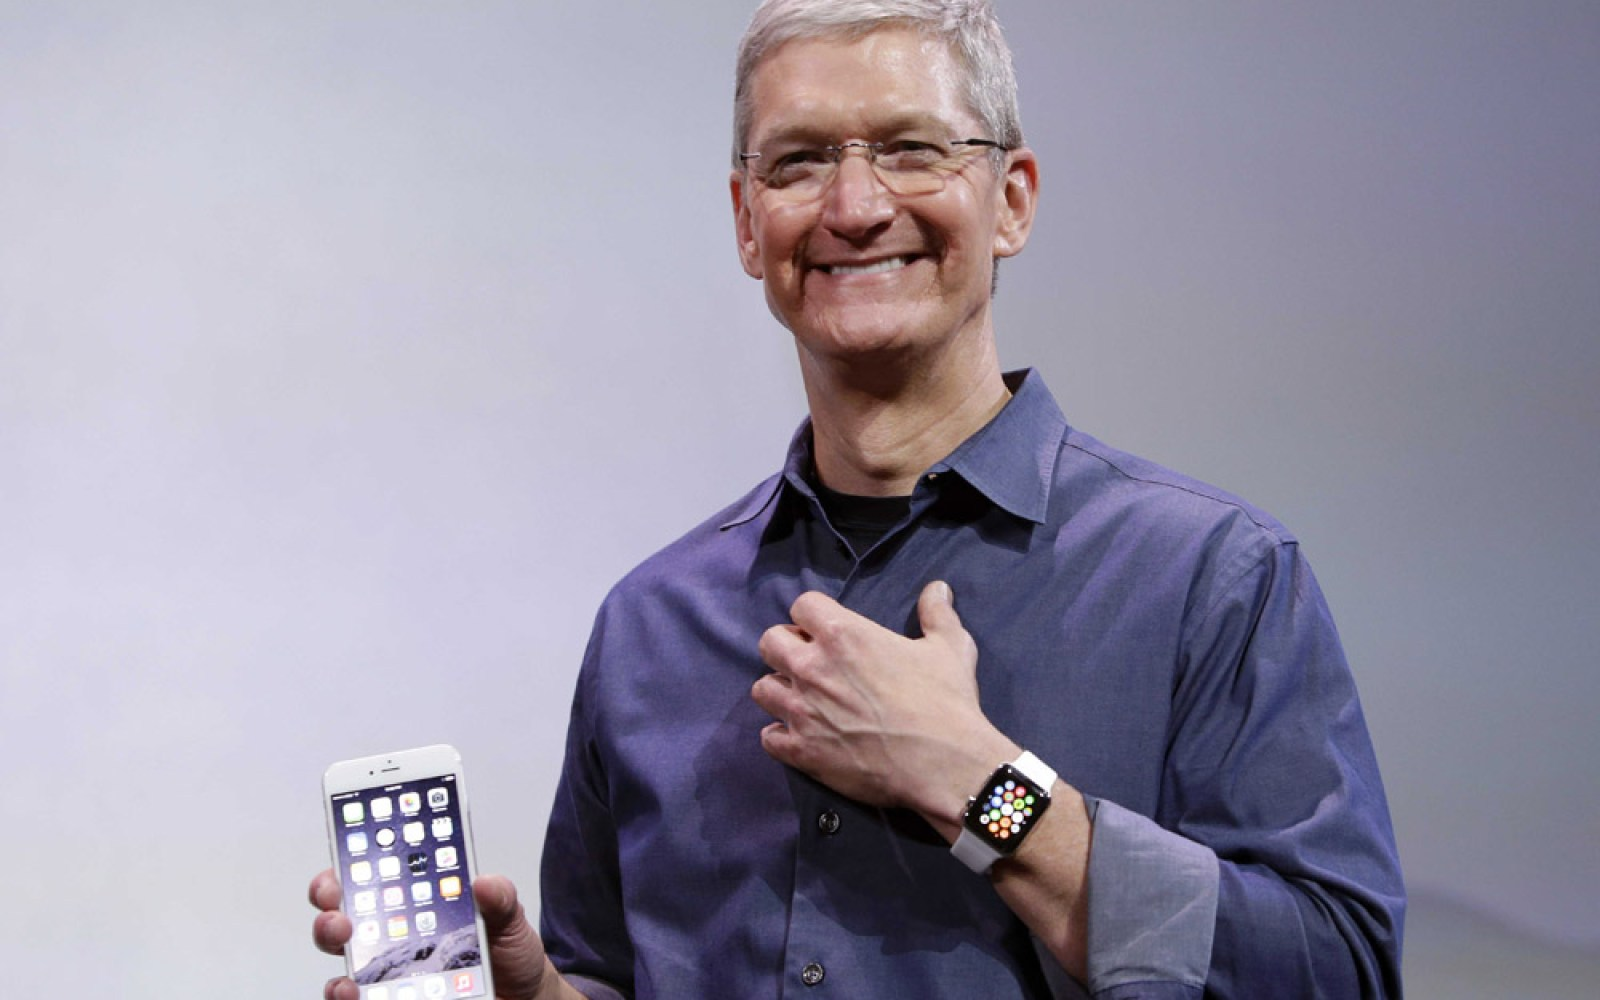 Tim Cook says Apple Watch will be available outside U.S. in April